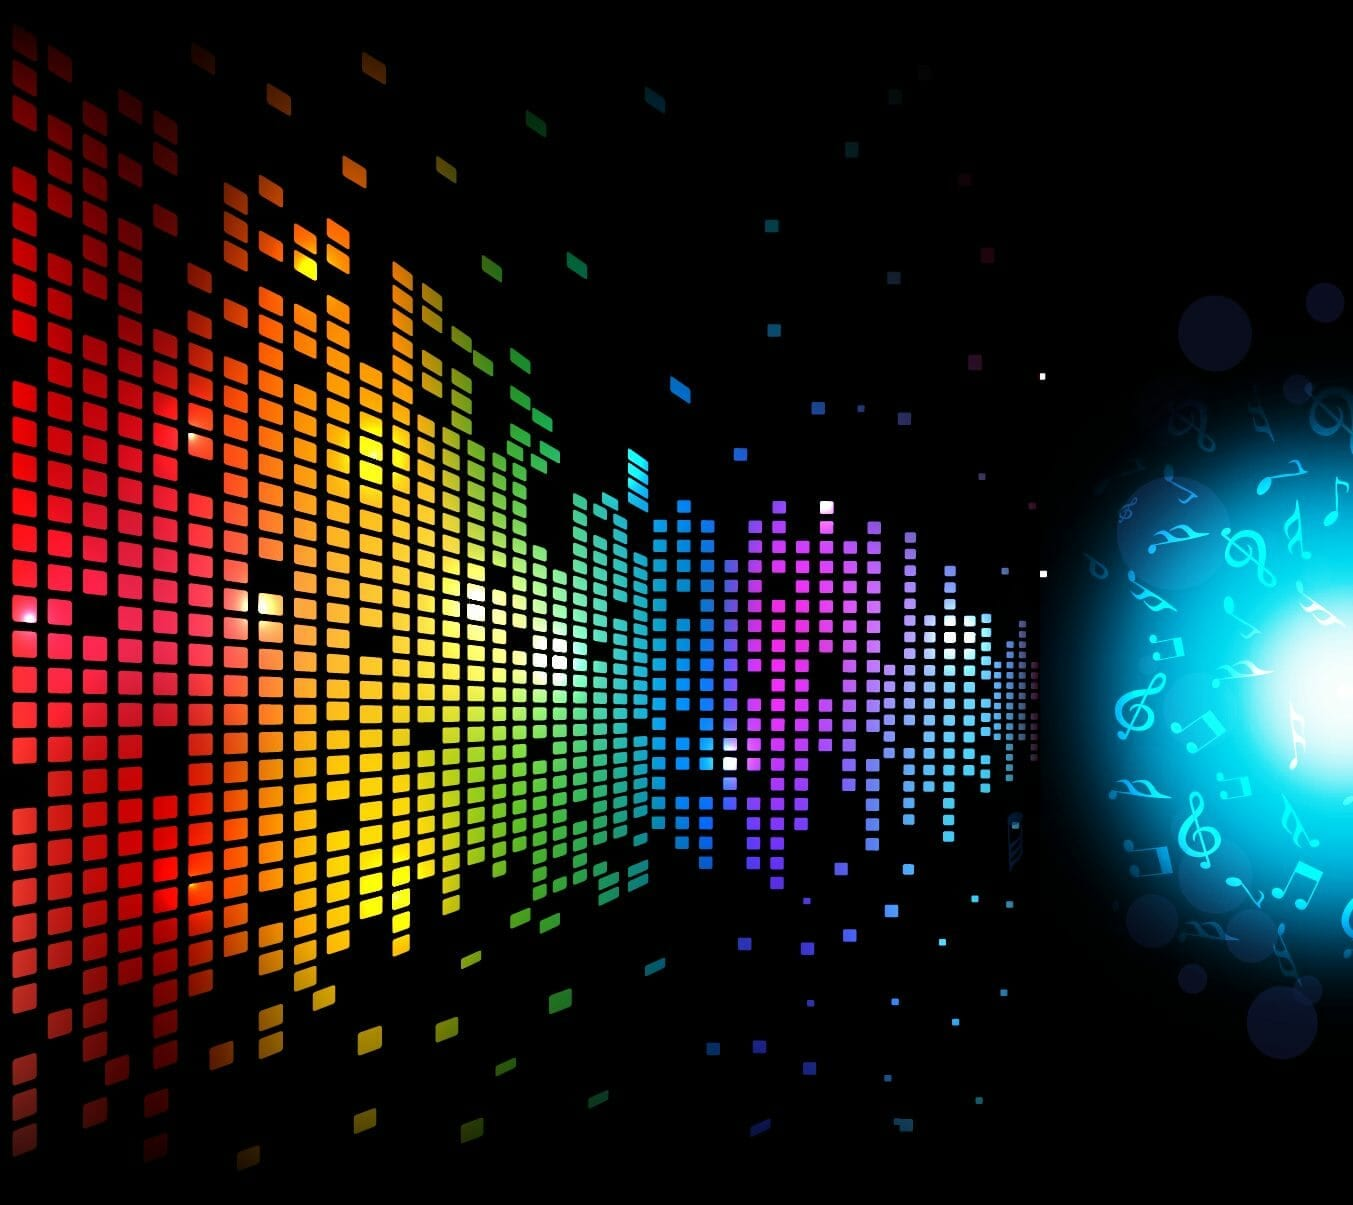 Digital Music Background 01